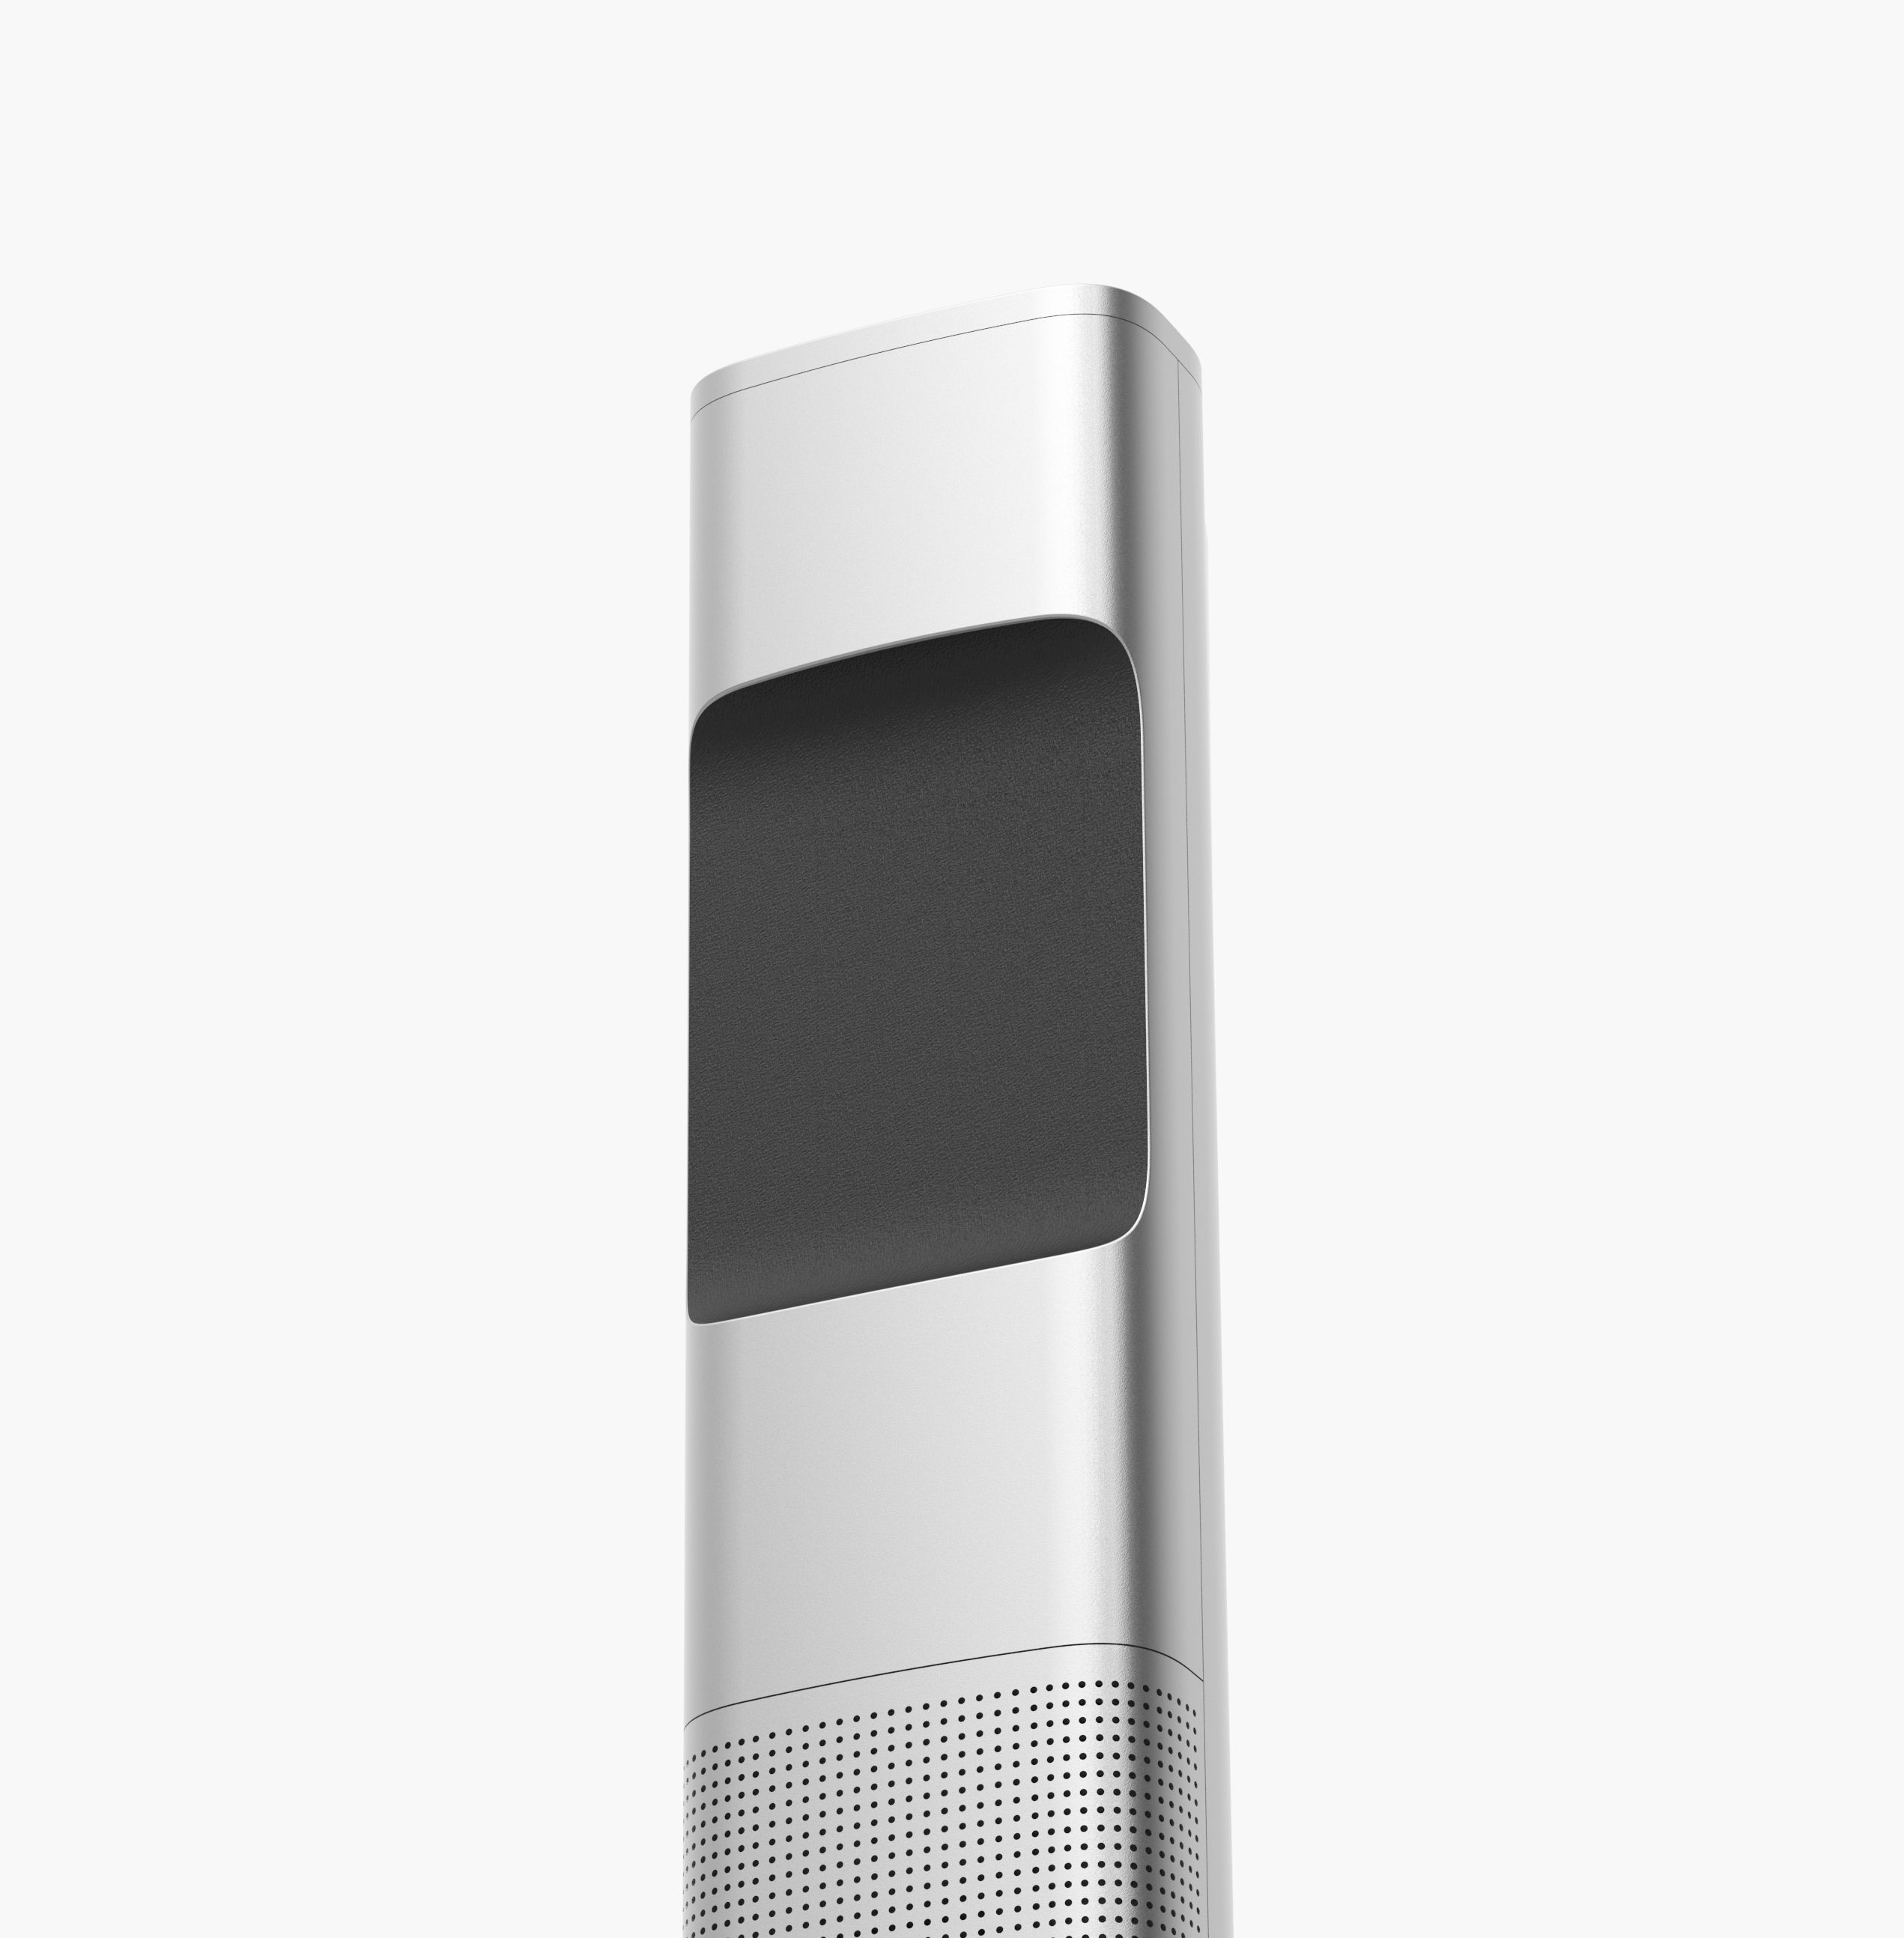 METO / SECURITY TOKEN Security token, Air purifier